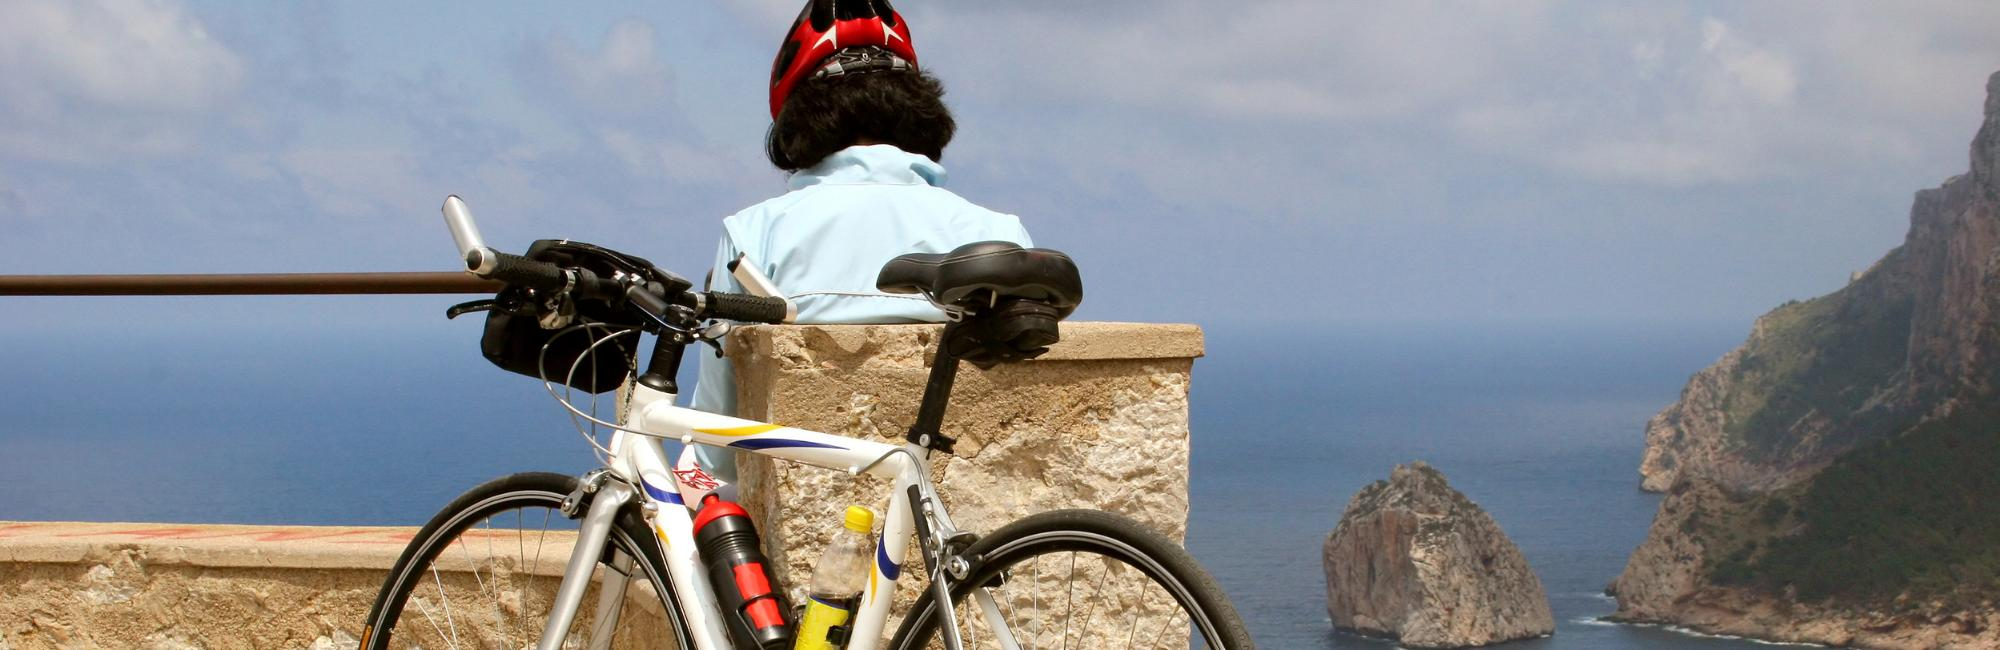 Woman with a bike in Mallorca